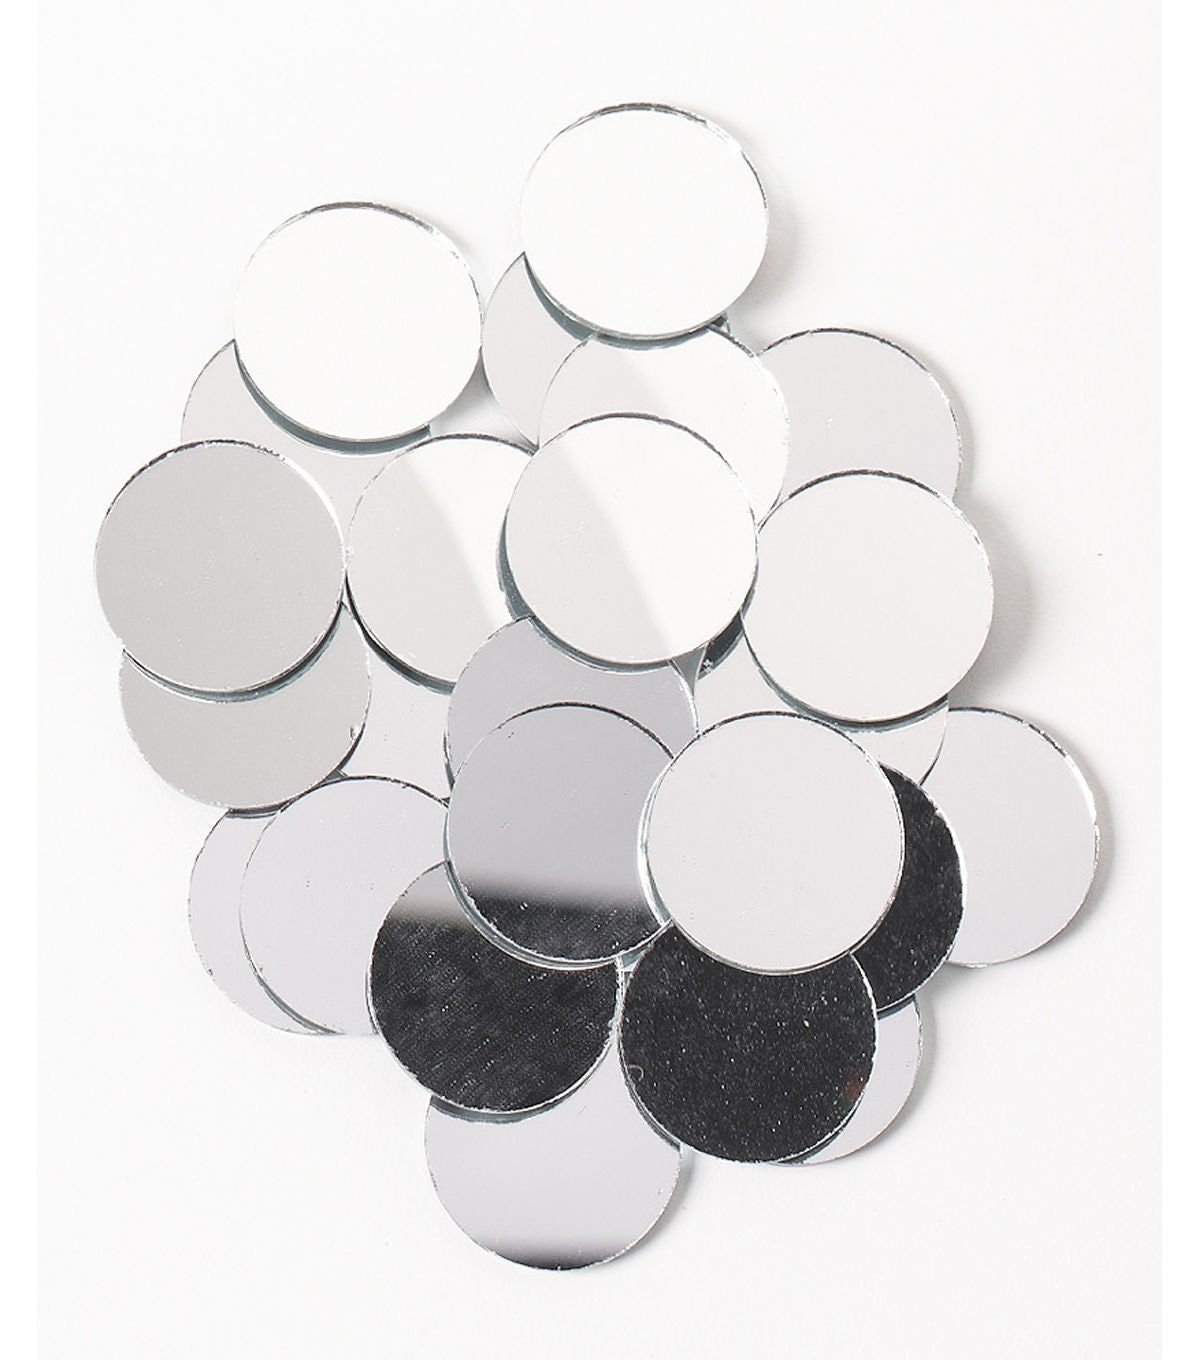 Mirrors Small: Shiny Round Mirrors Small Mirrors Mirror Glass Crafting